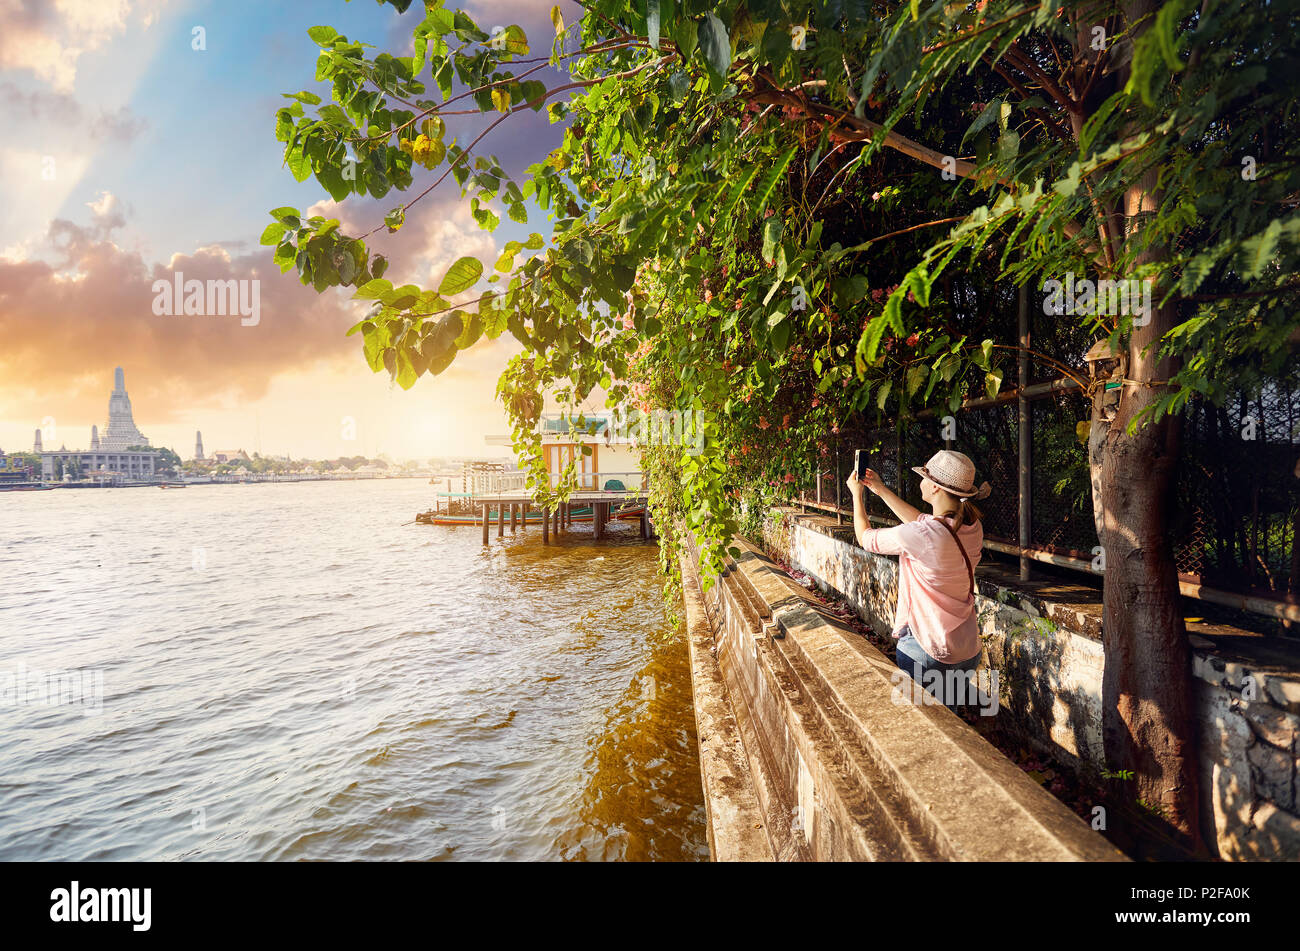 Woman tourist taking a picture of Wat Arun with her phone at sunset in Bangkok, Thailand - Stock Image